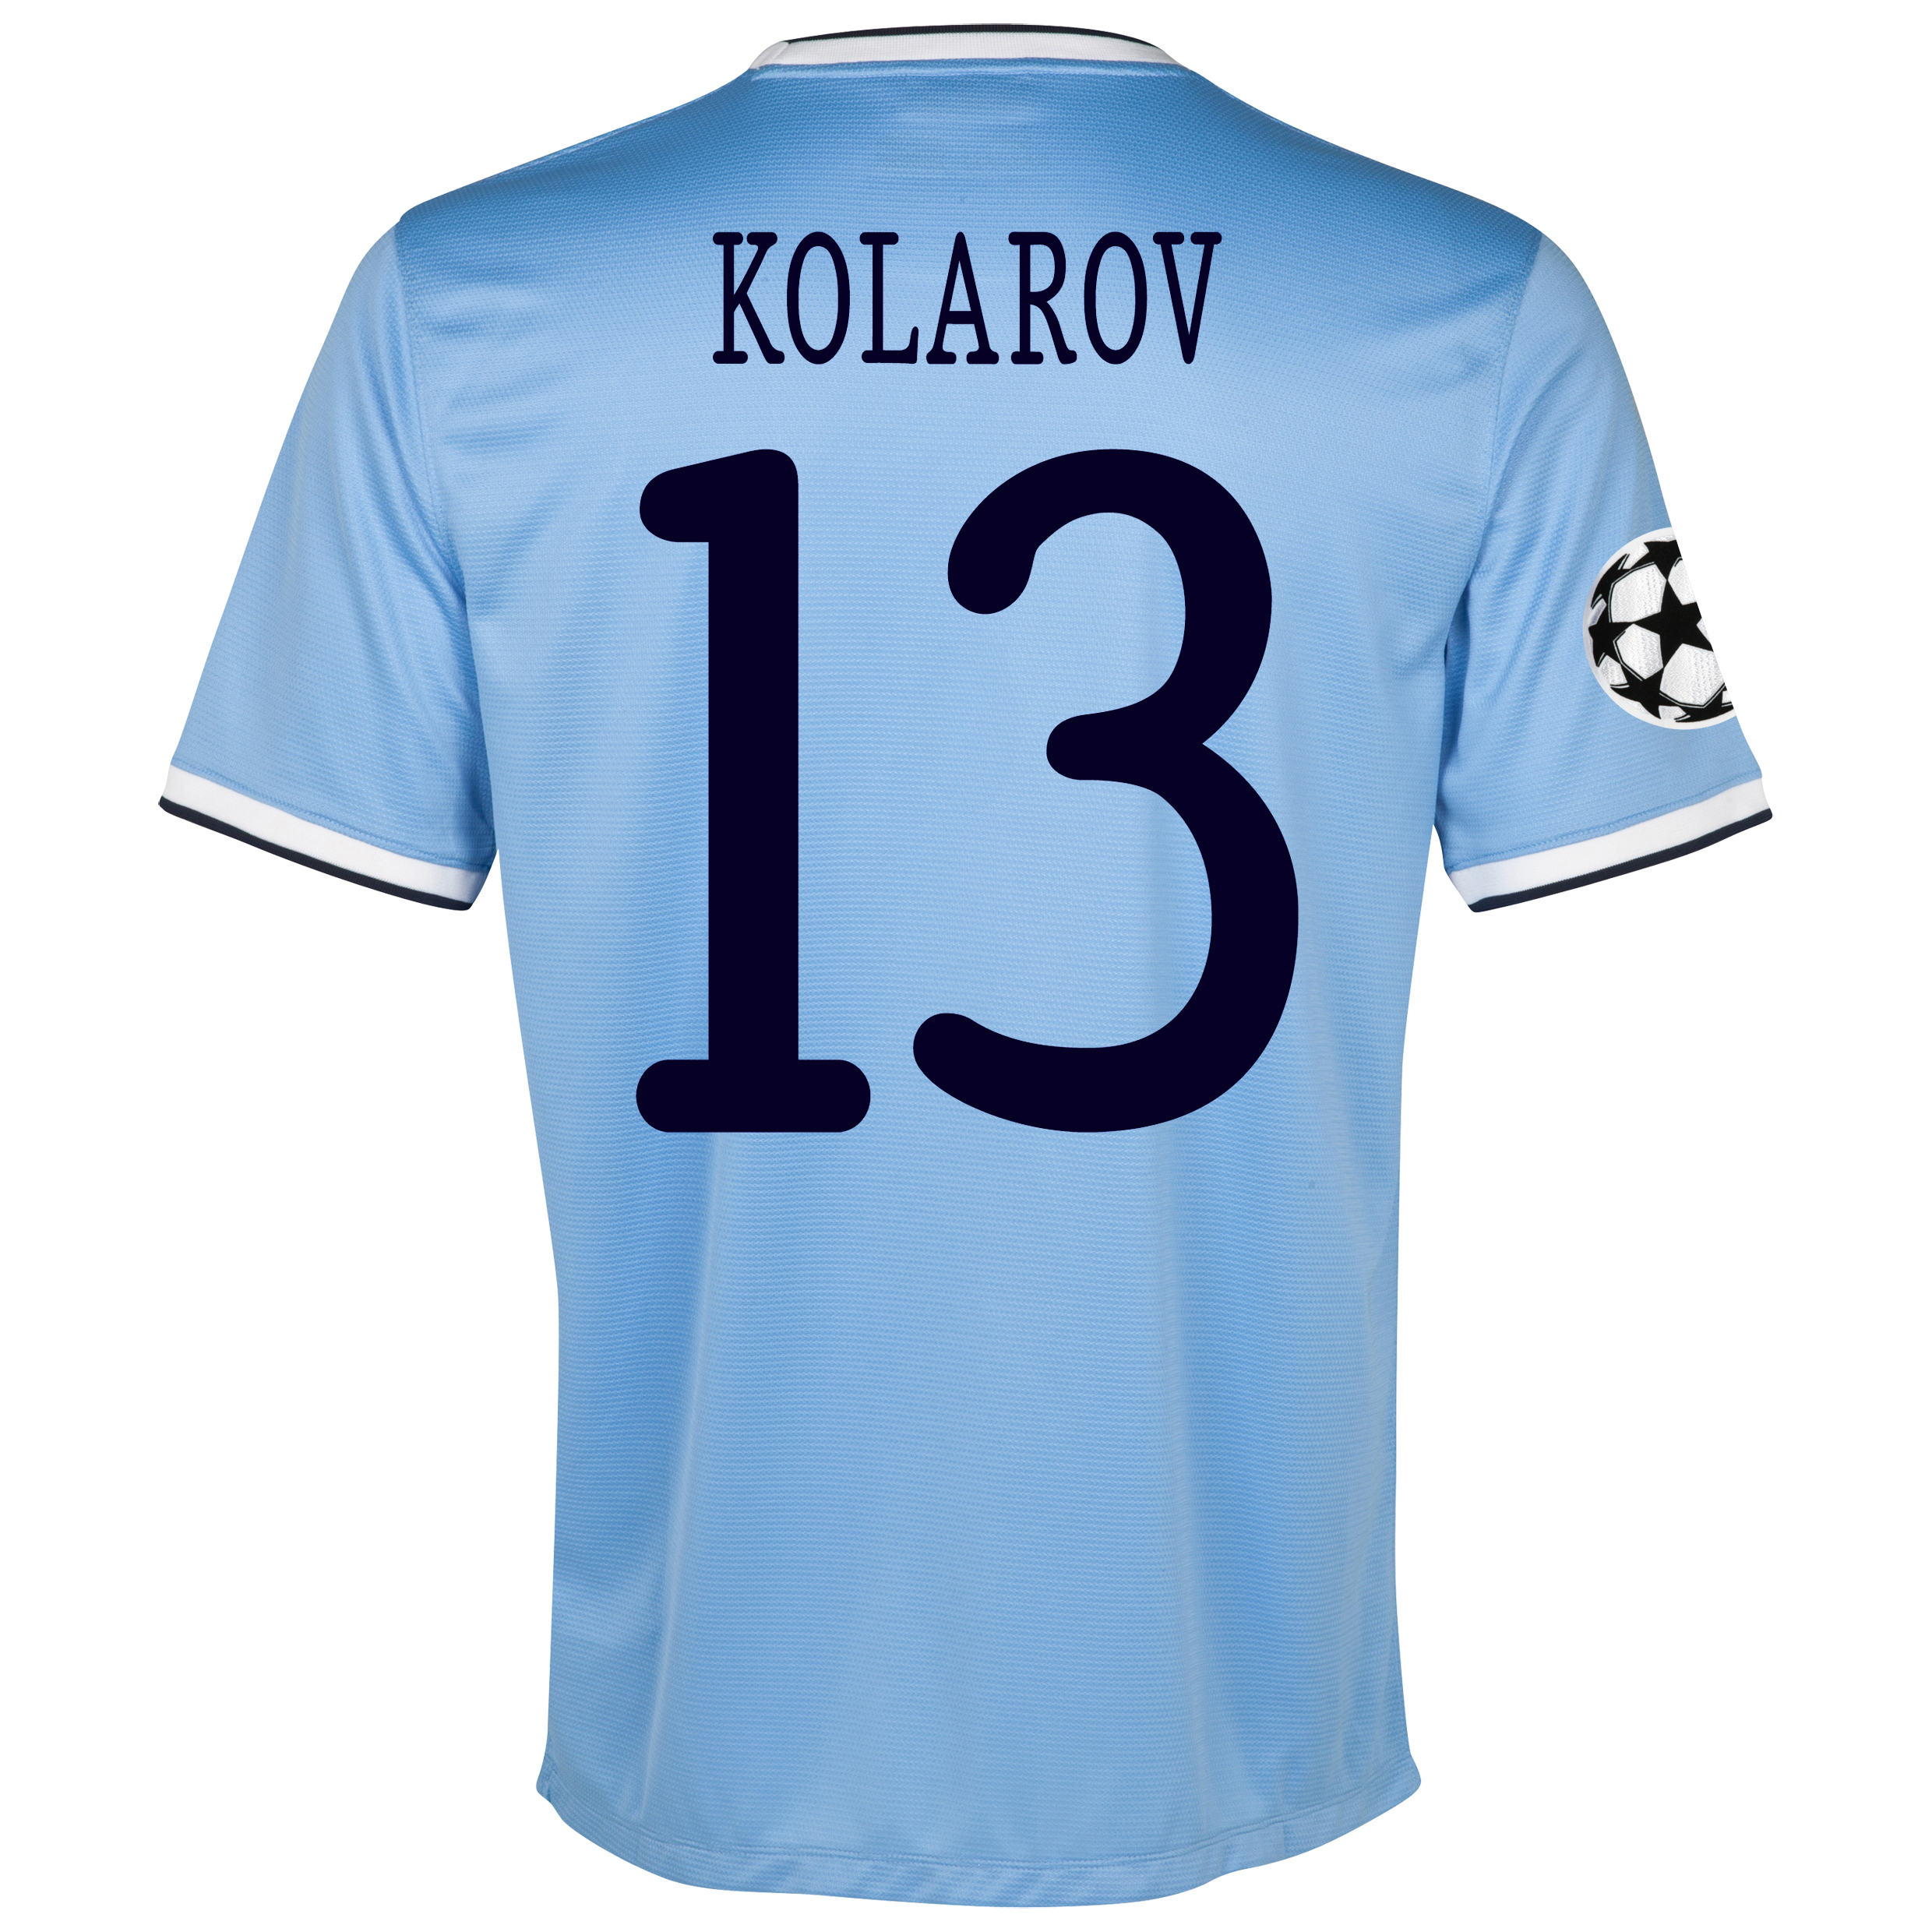 Manchester City Home Shirt 2013/14 with Kolarov 13 printing